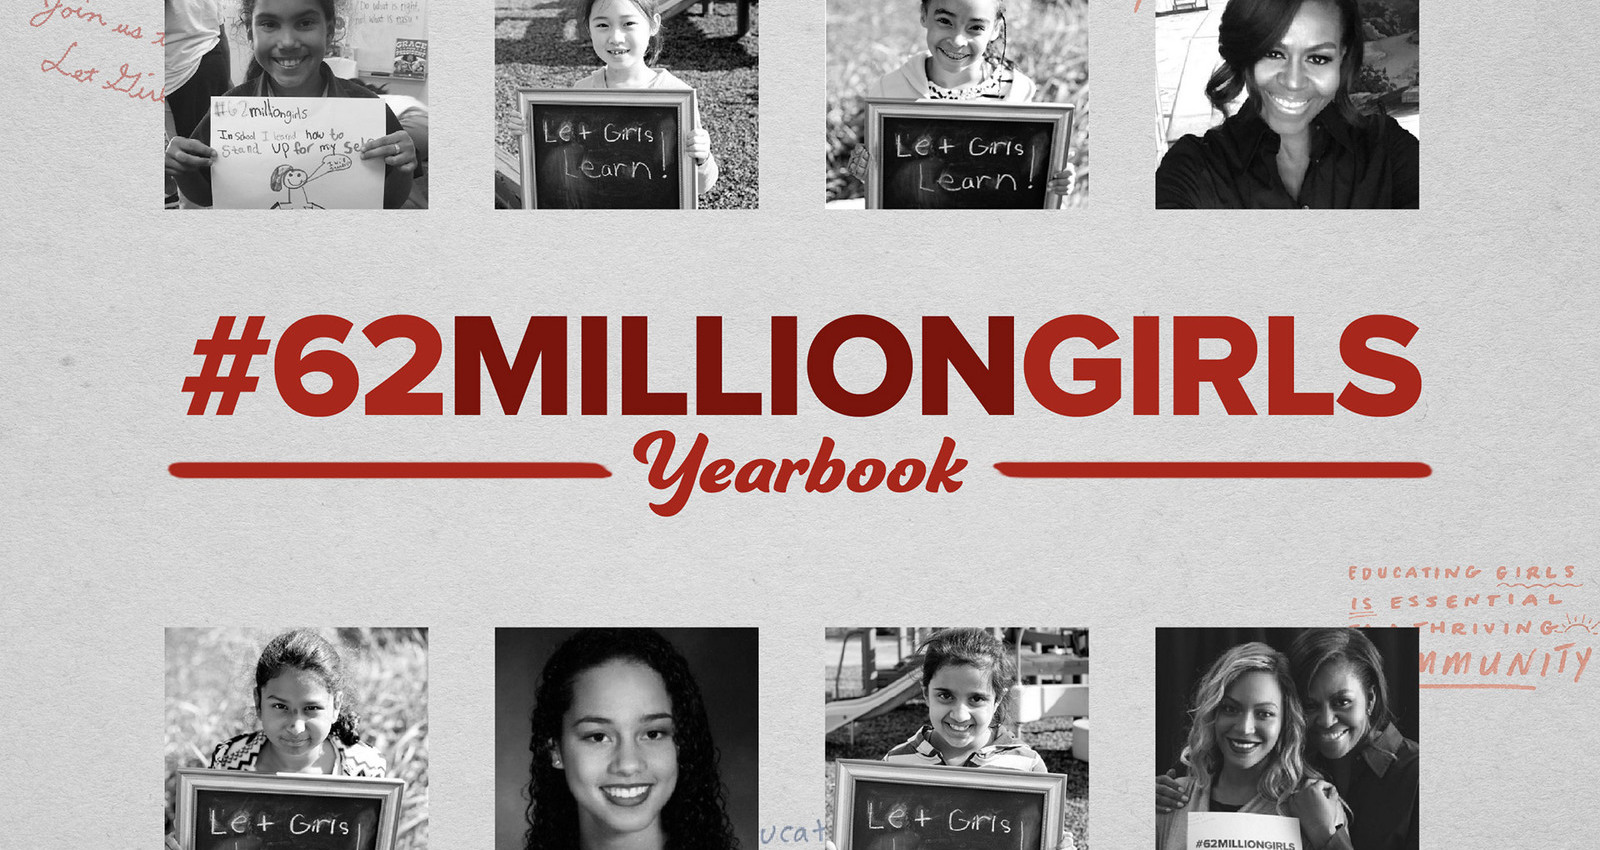 The #62MillionGirls Yearbook